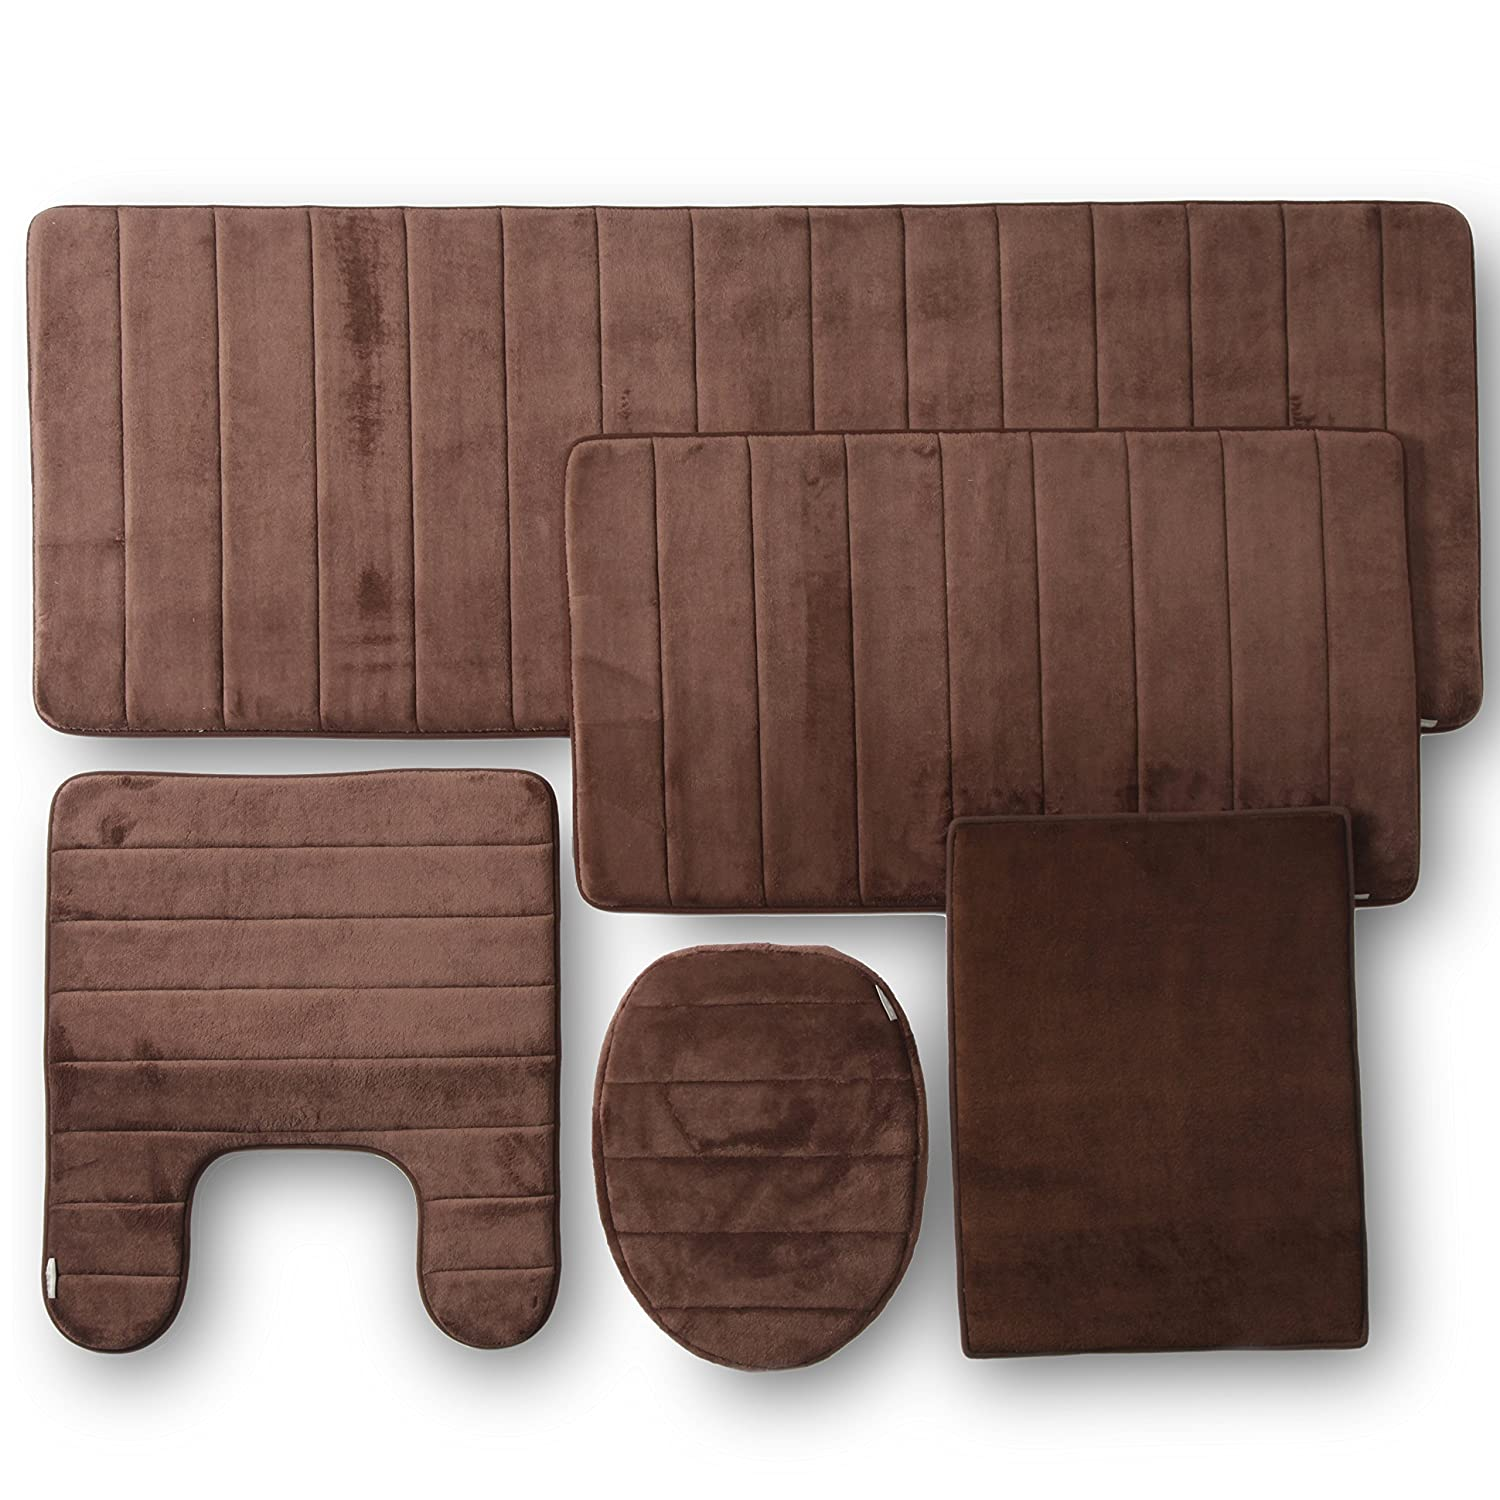 Amazon.com: Townhouse Rugs Memory Foam Bathroom Set Combo, 5 Piece, Brown:  Home U0026 Kitchen